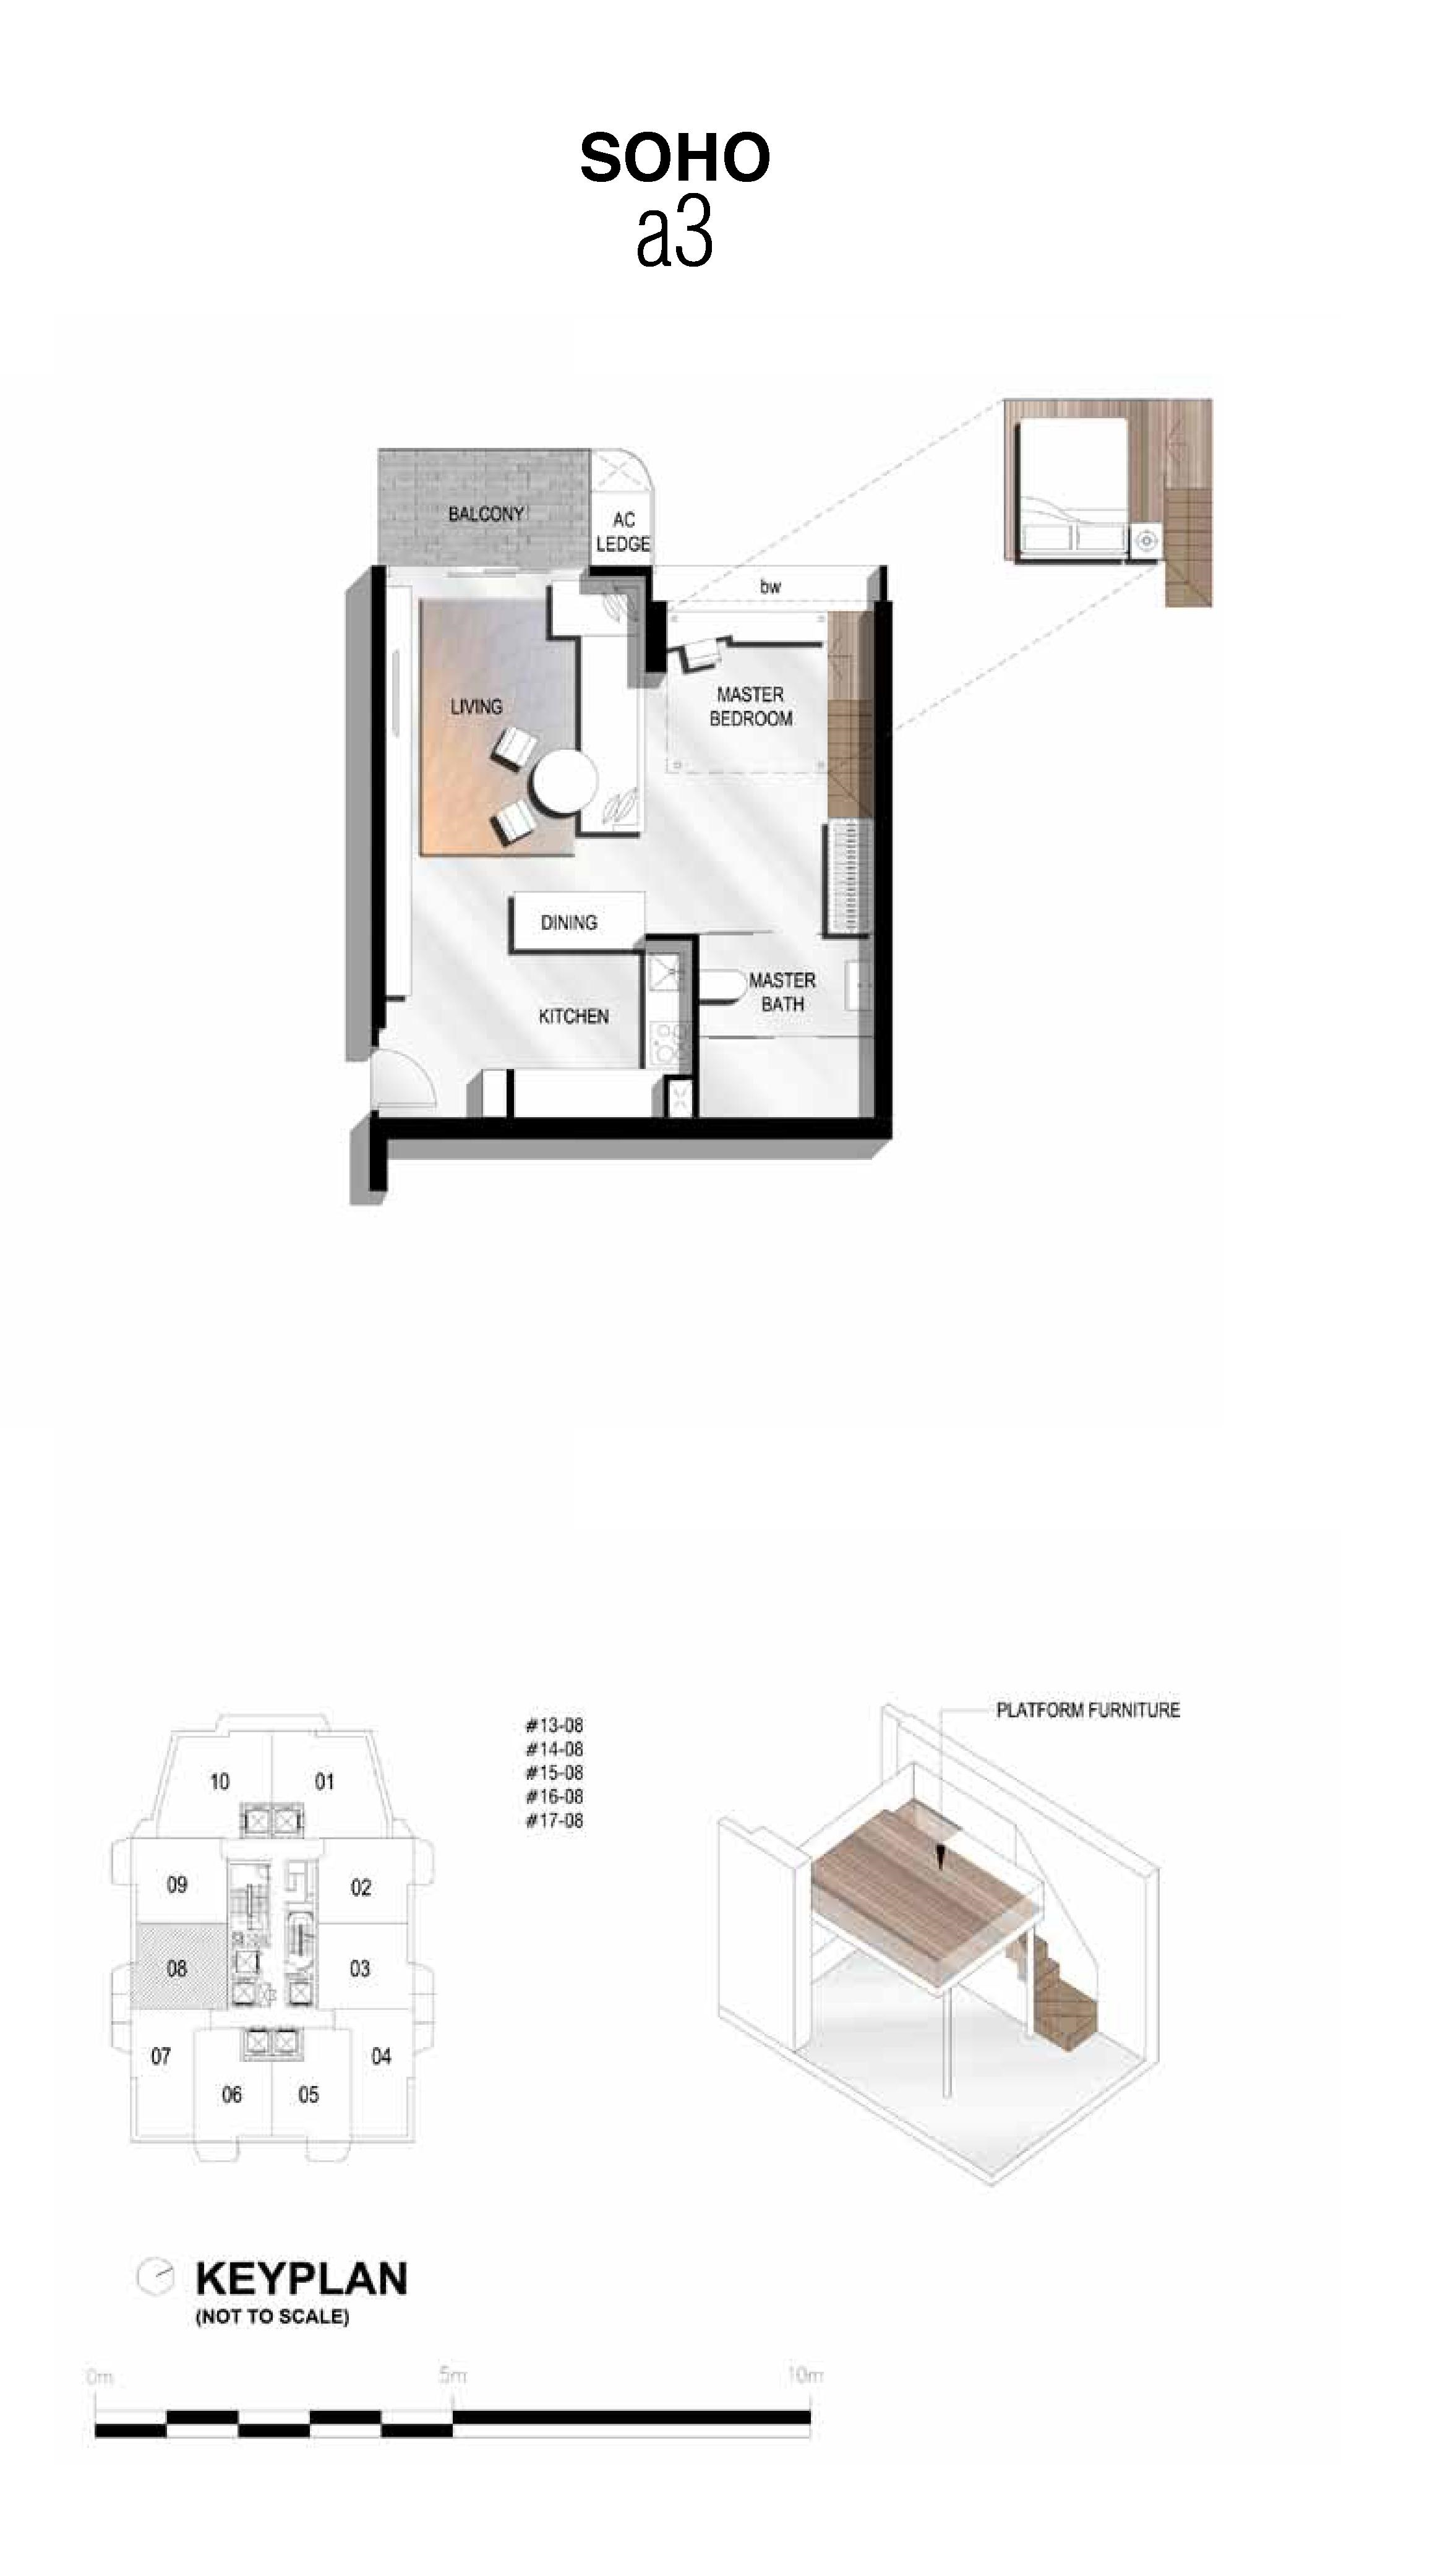 The Scotts Tower 1 Bedroom SOHO Type a3 Floor Plans